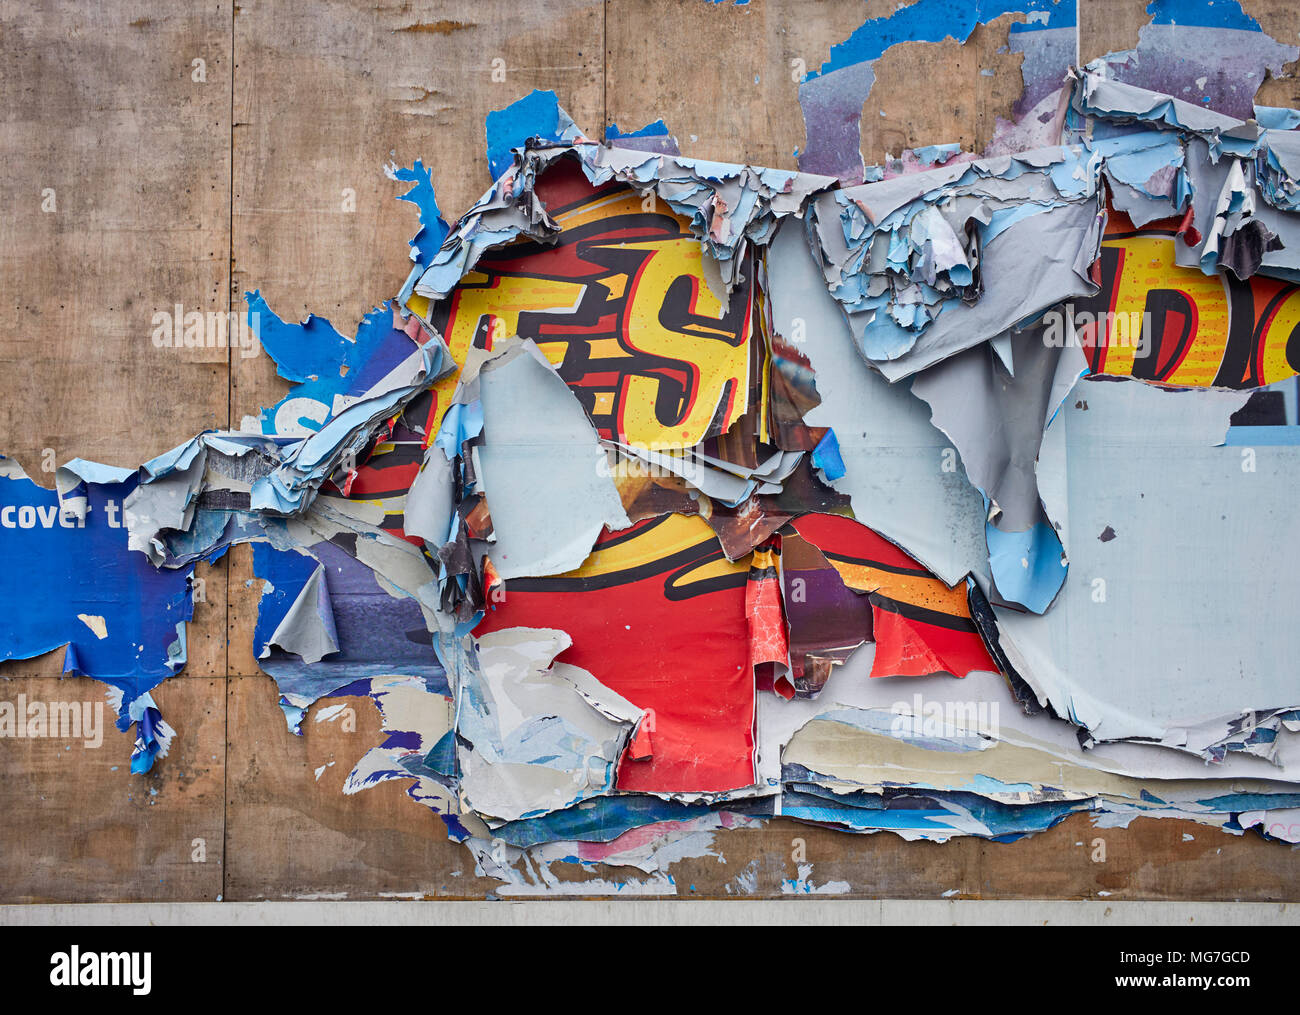 A 48 sheet poster site with multiple posters ripped off by the rain and wind after storms - Stock Image